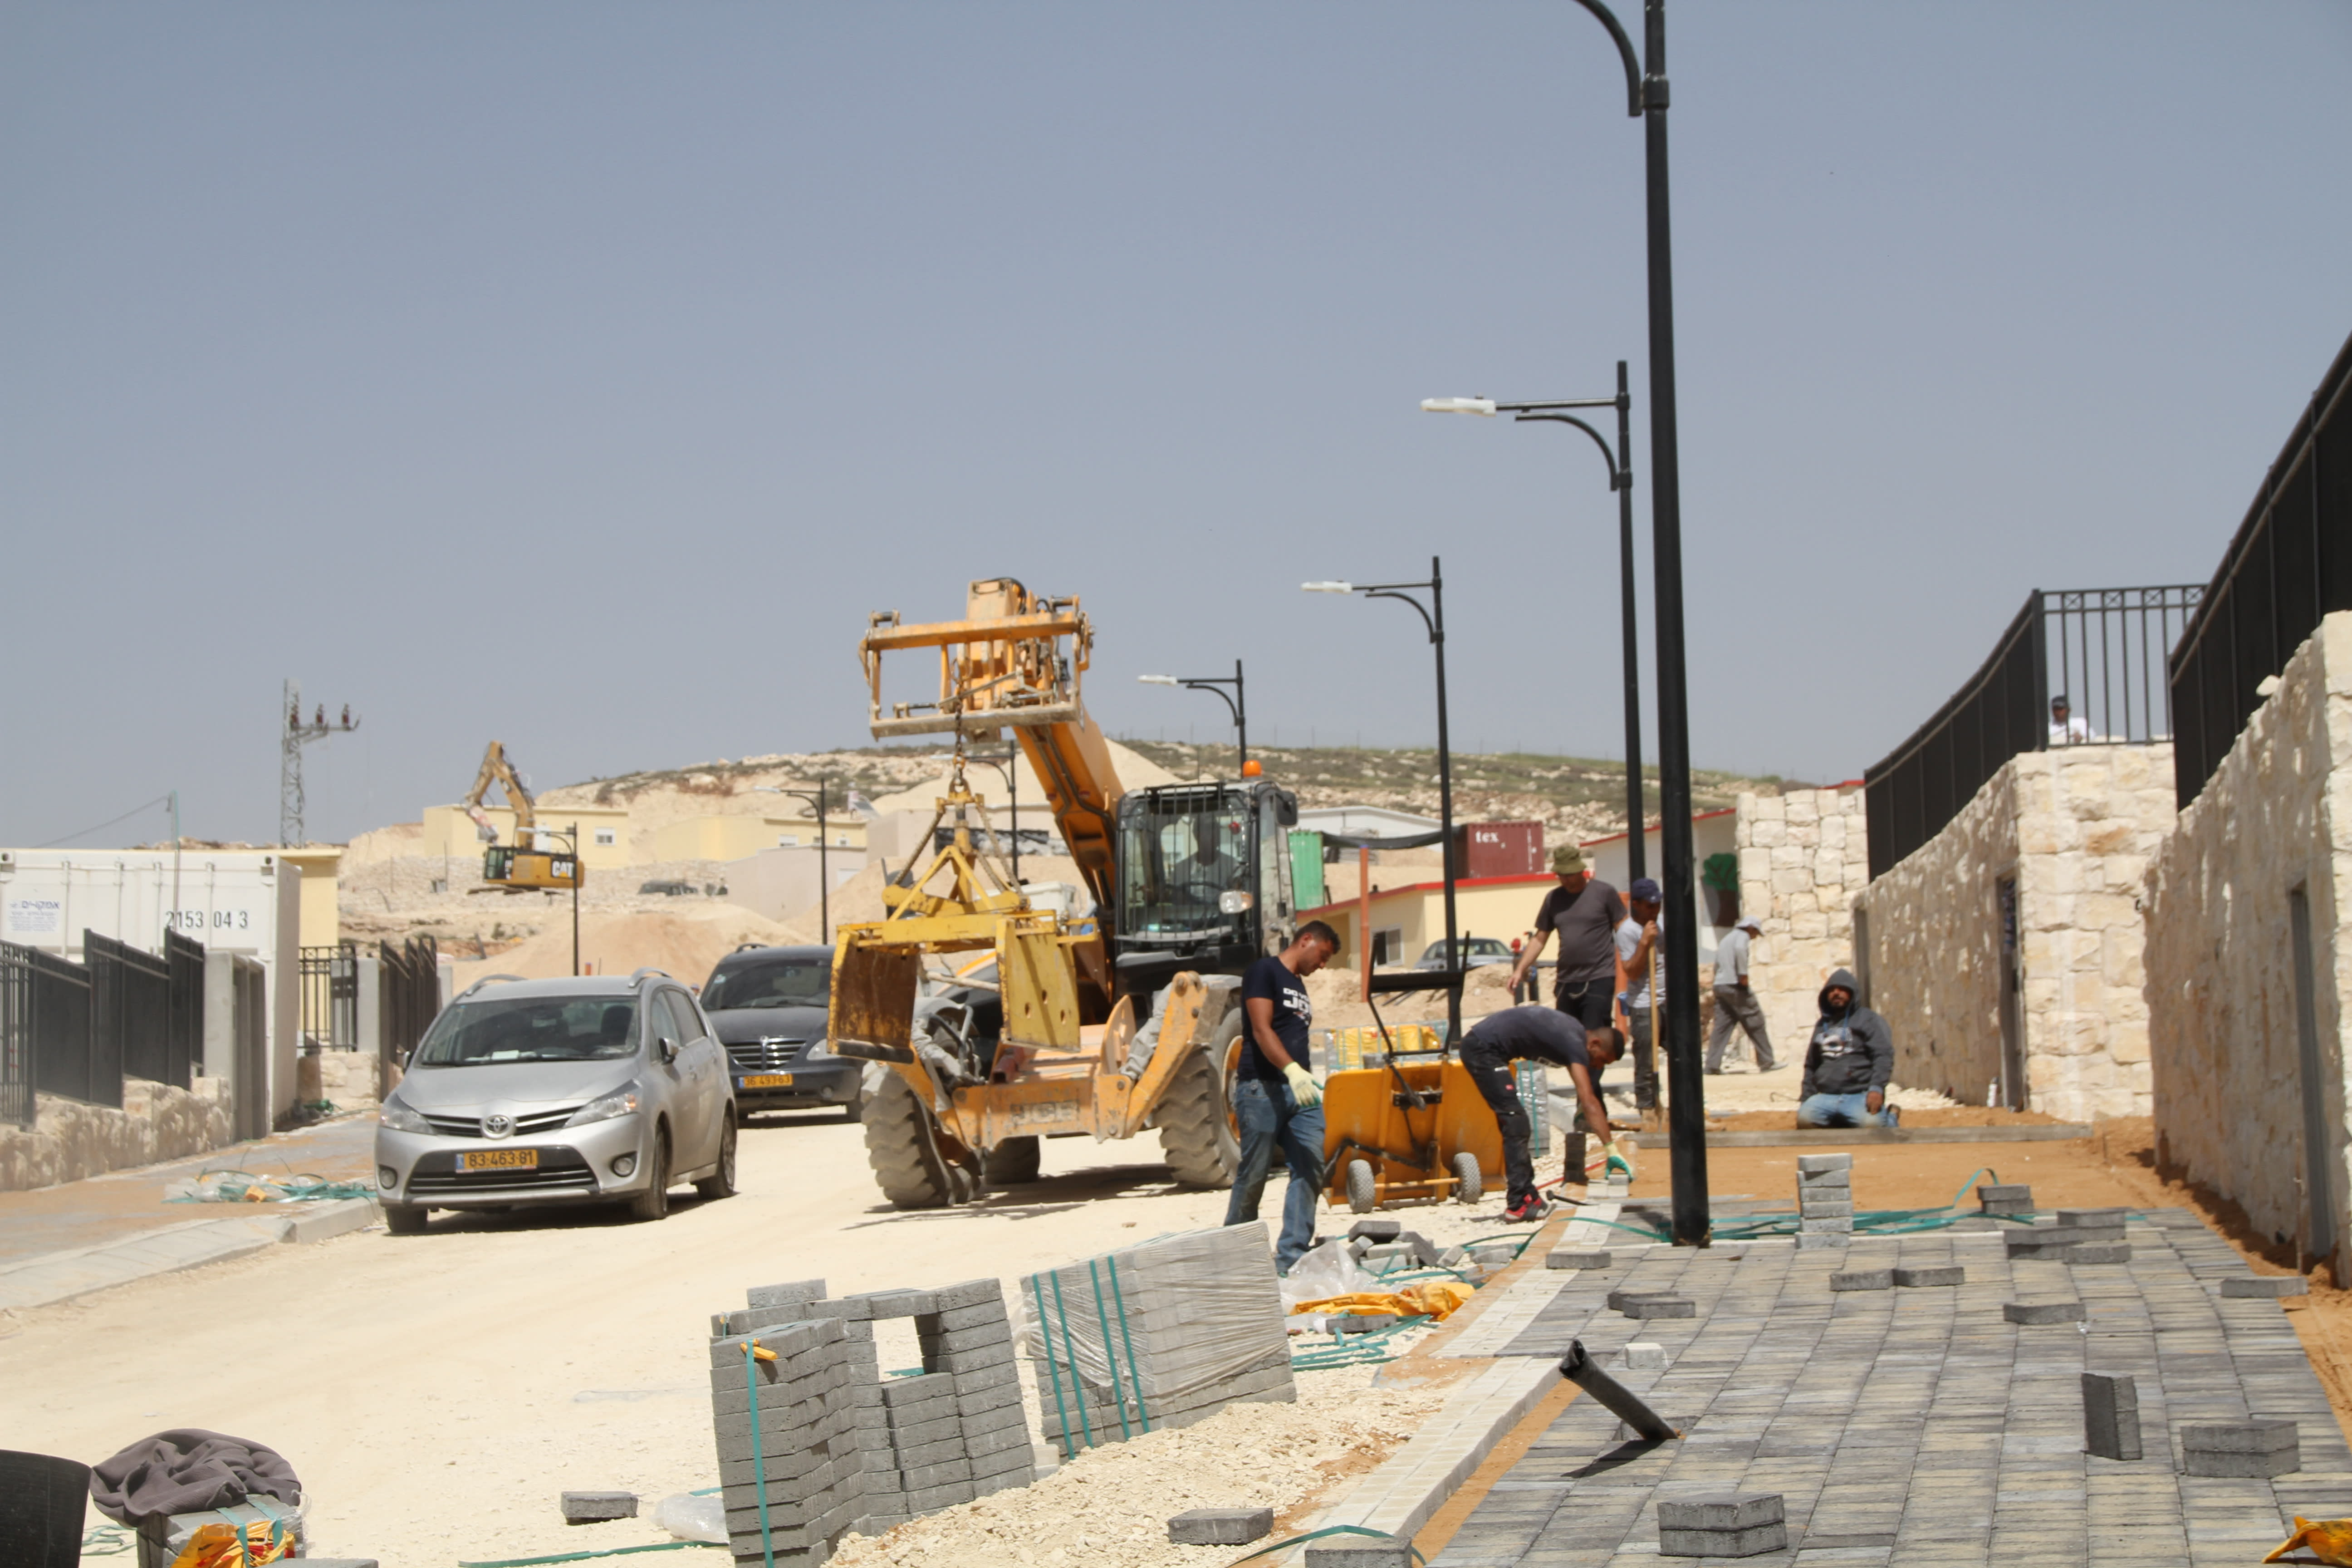 Construction on the first homes in the new Amichai settlement in the West Bank (TOVAH LAZAROFF).